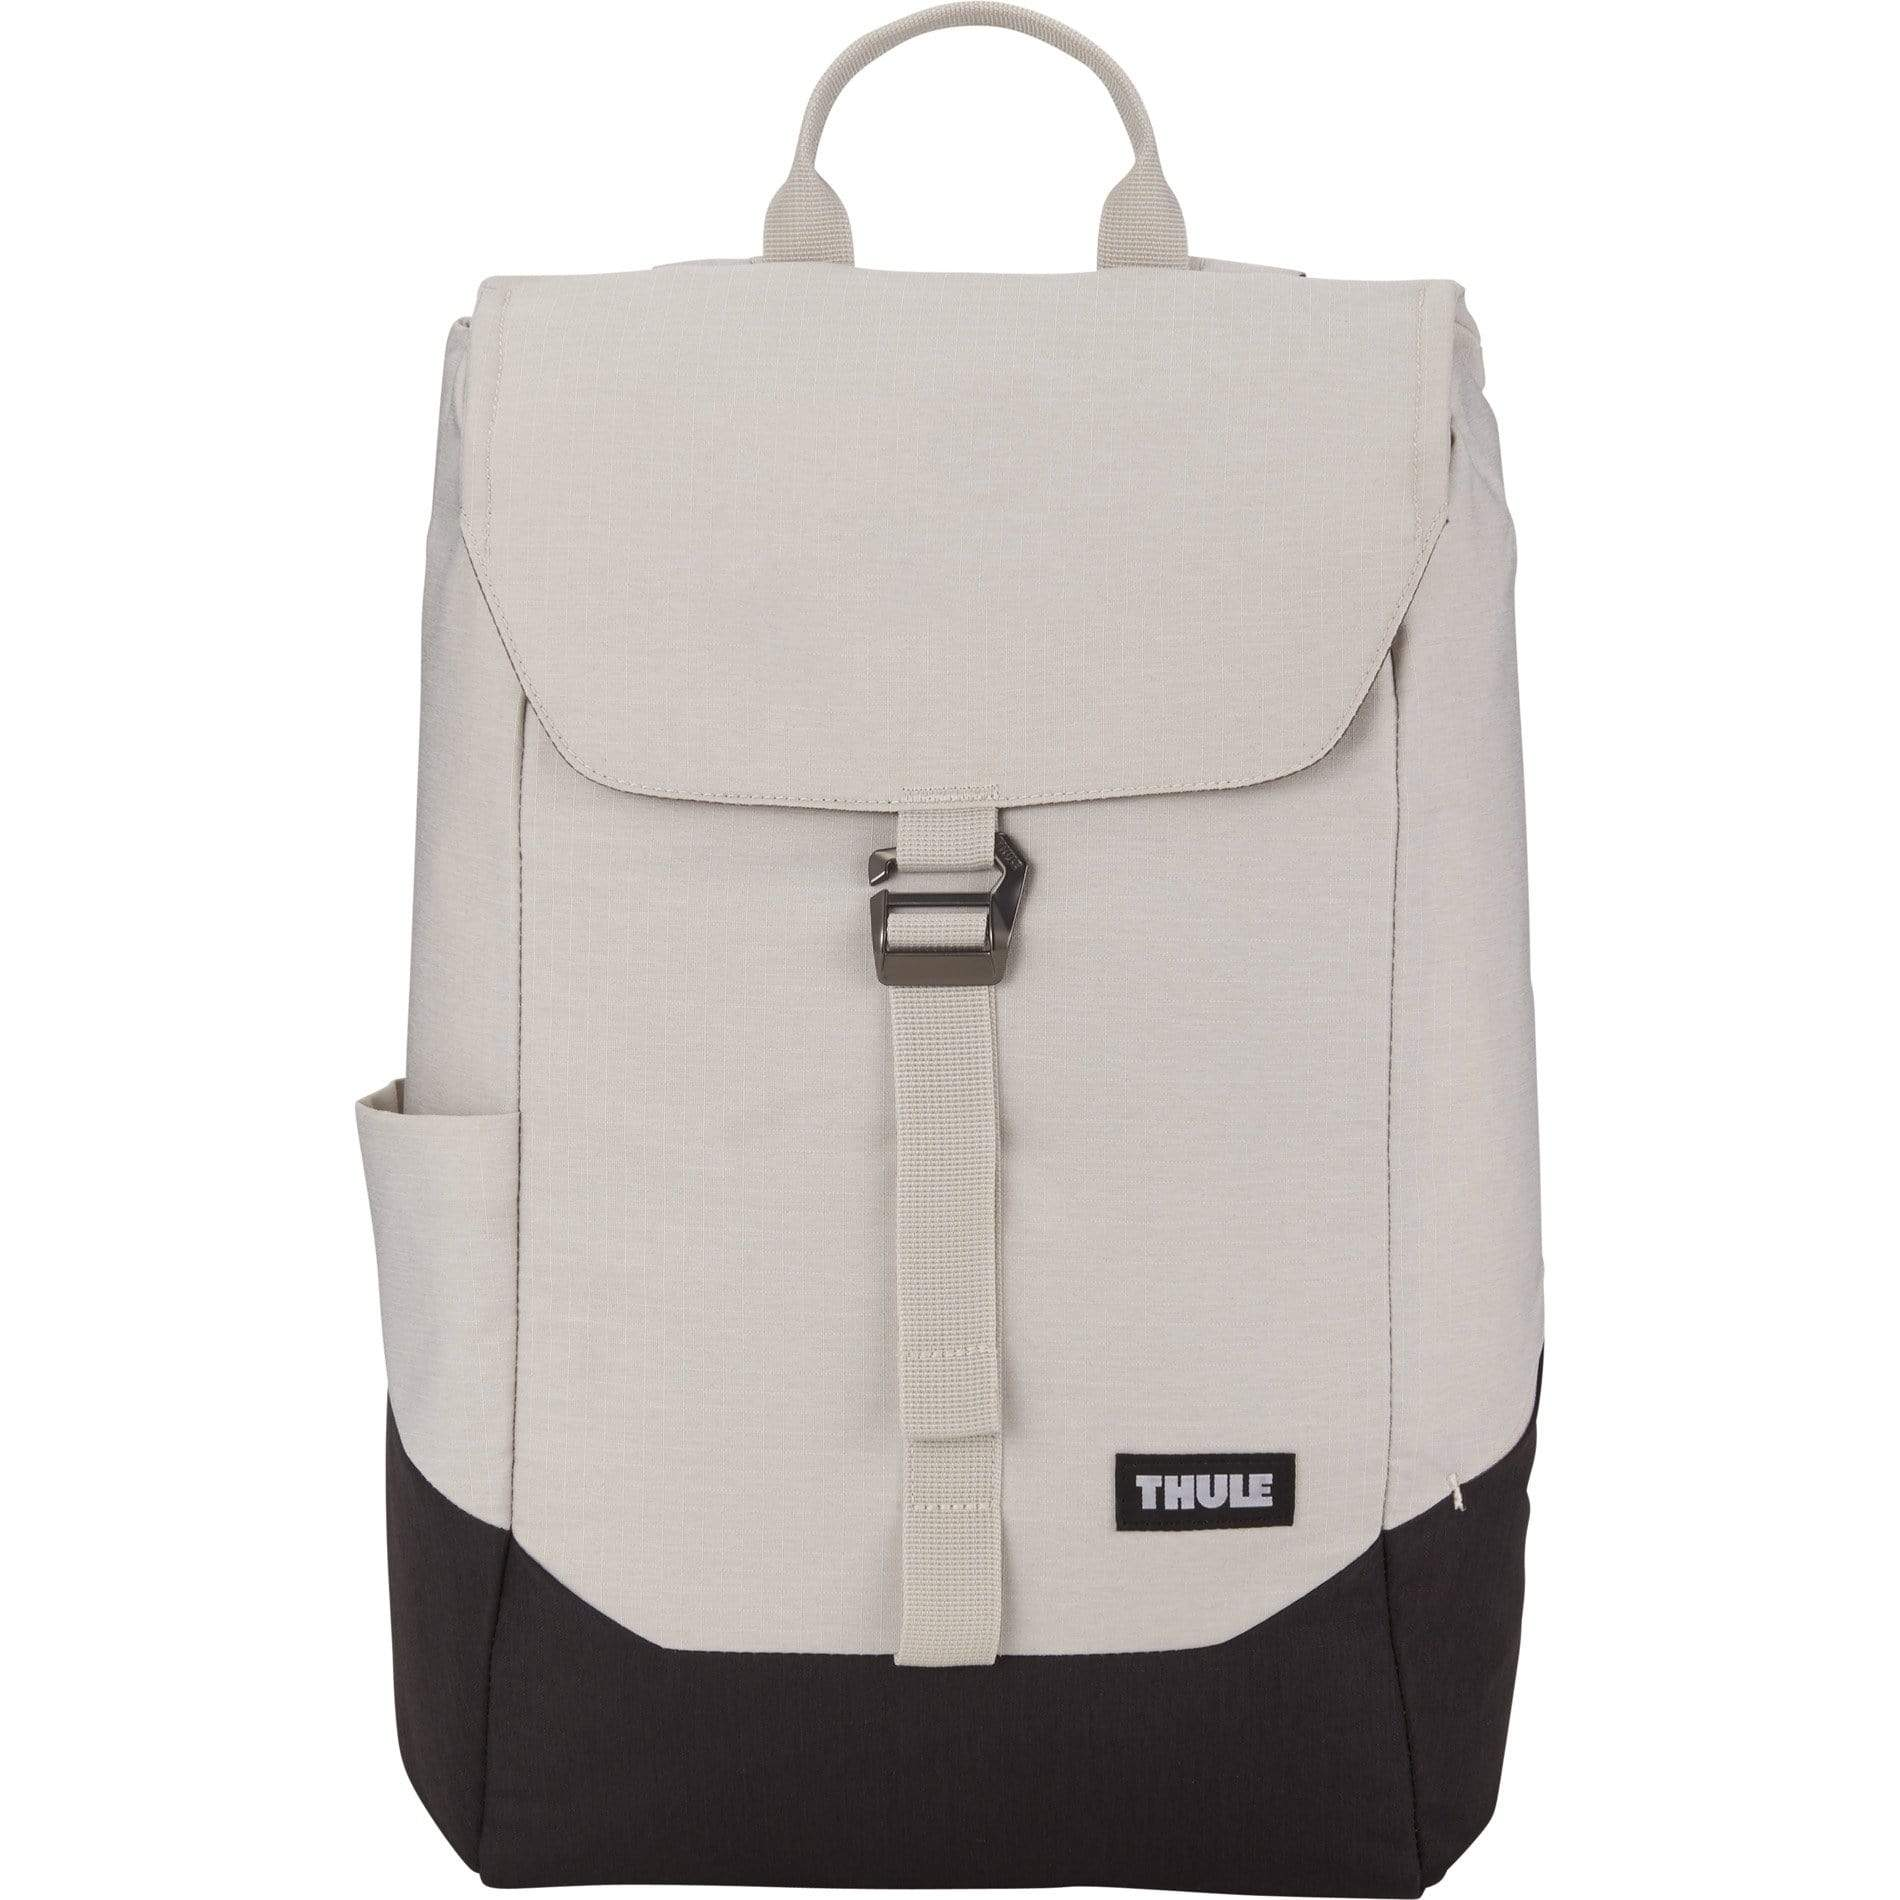 "Thule Bags One size / Concrete Thule® Lithos 15"" Computer Backpack 16L"